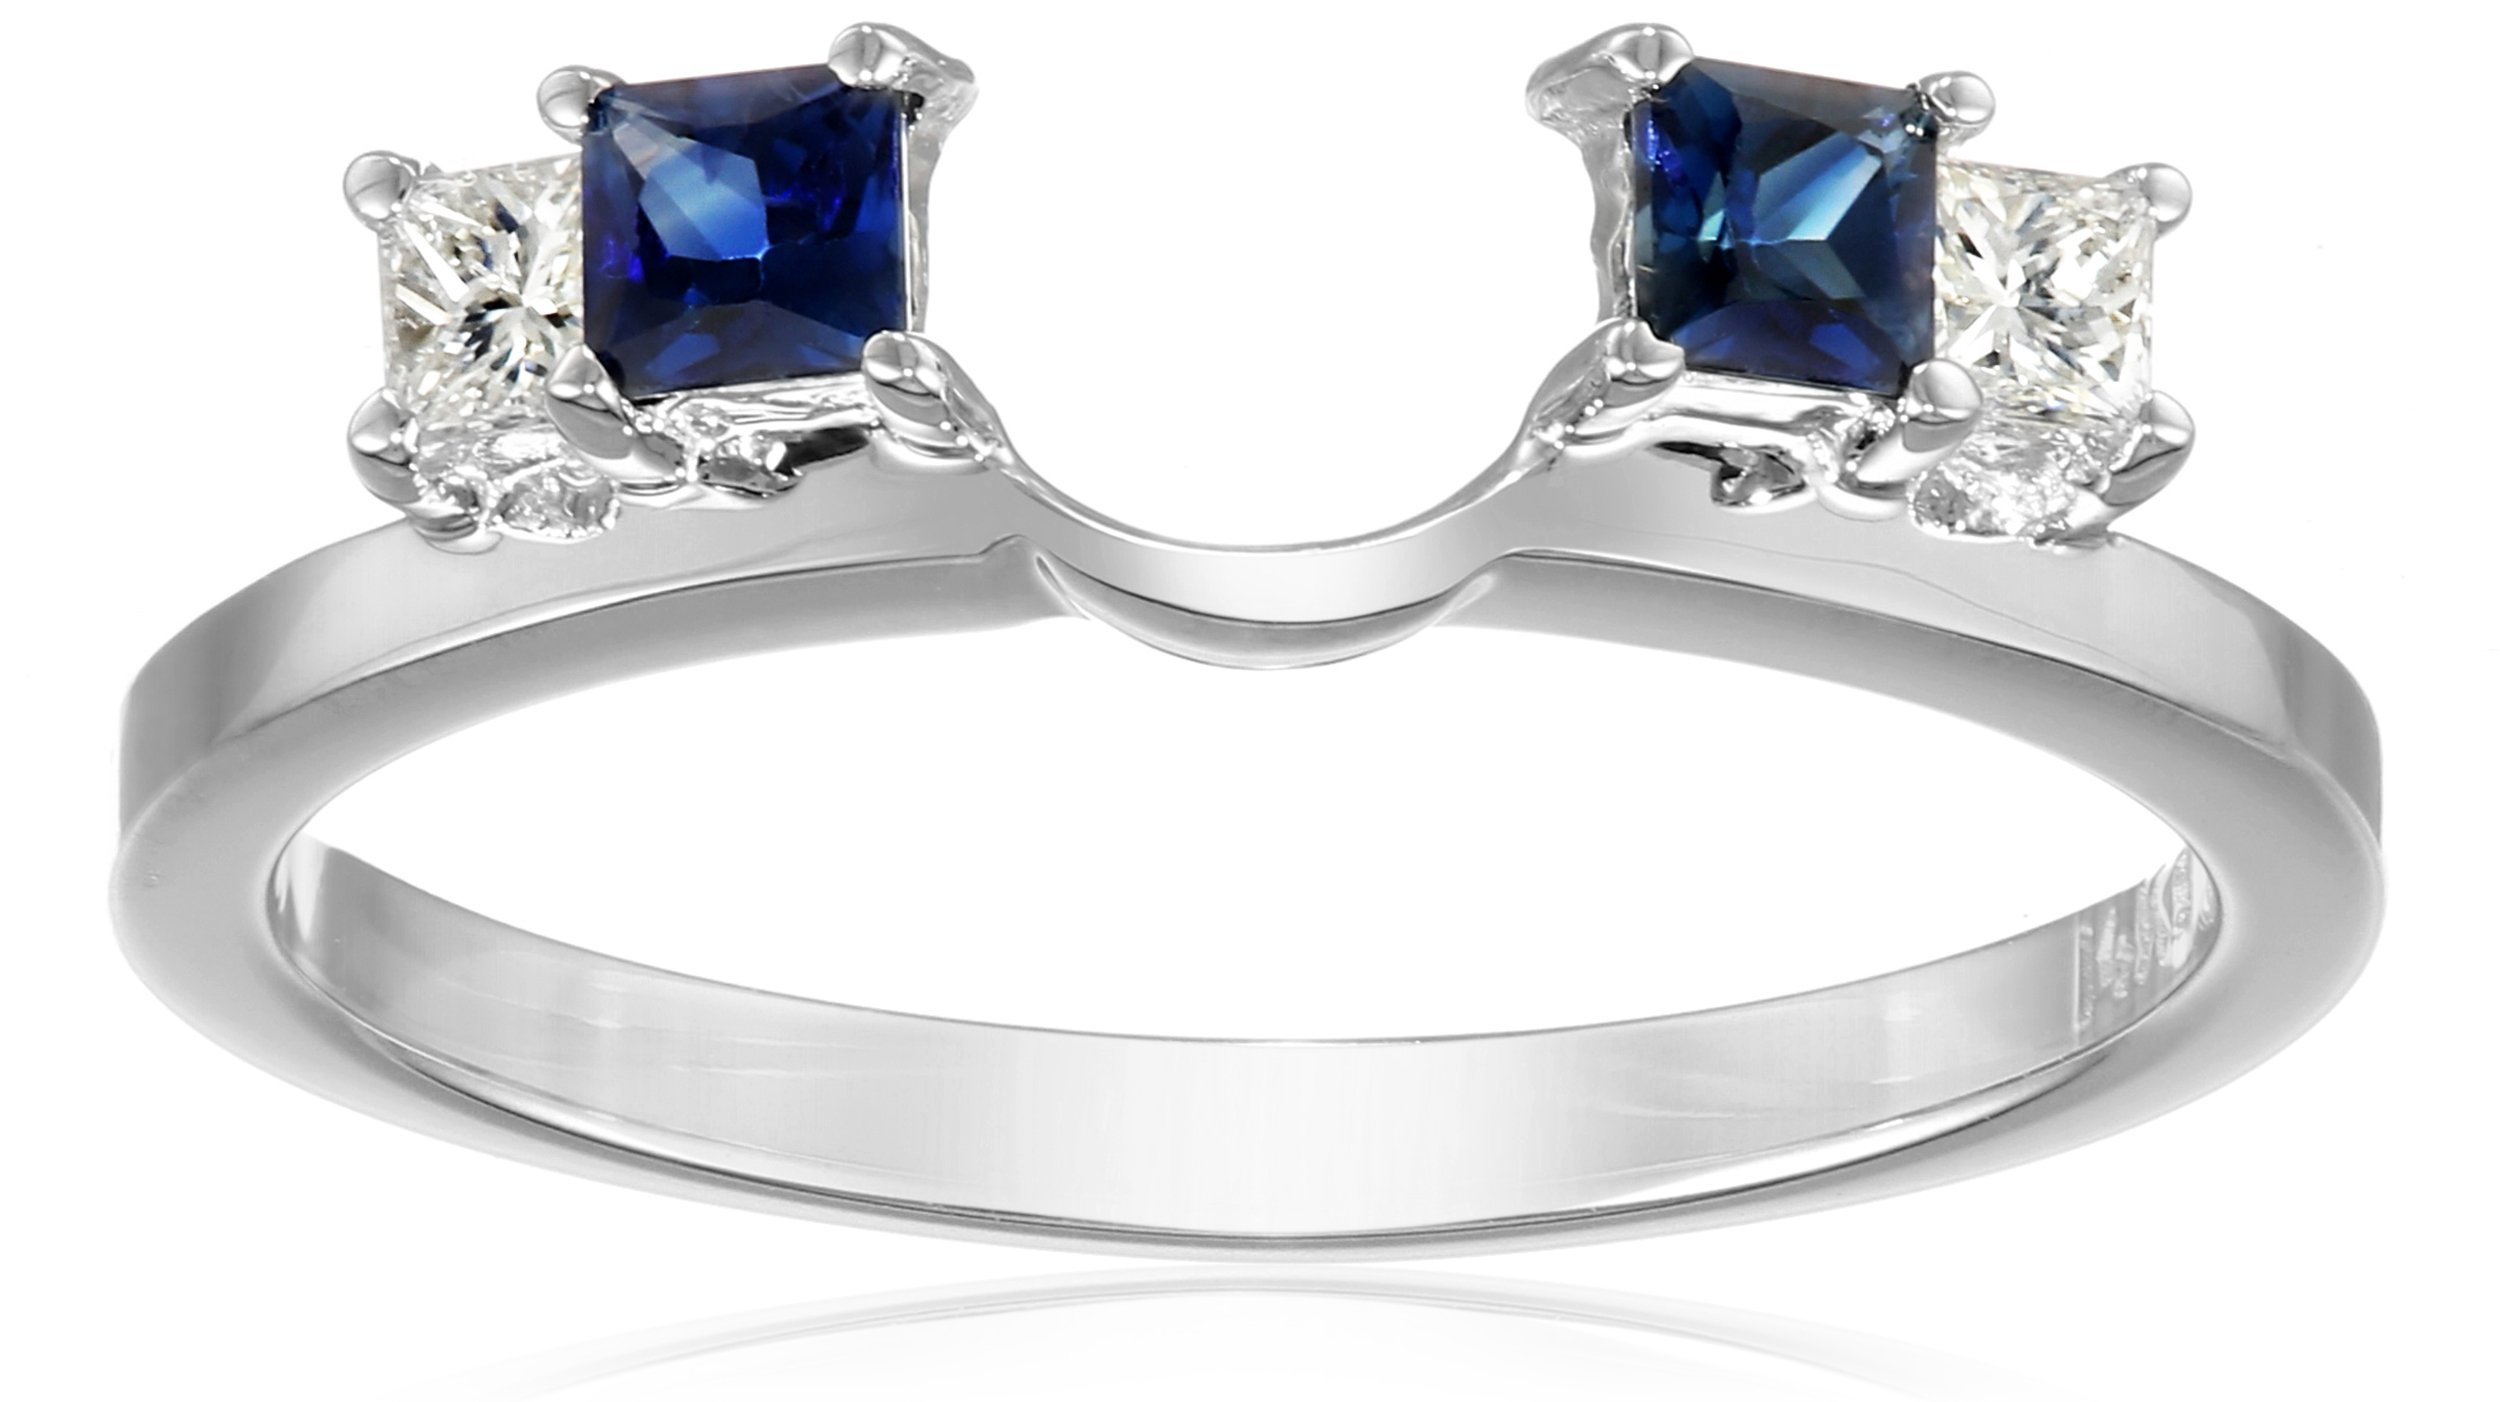 14k White Gold 1/6carat Princess Diamond and Blue Sapphire Solitaire Enhancer Wedding Band (Fits 1/2carat-1carat Round/Princess Solitaire), Size 7